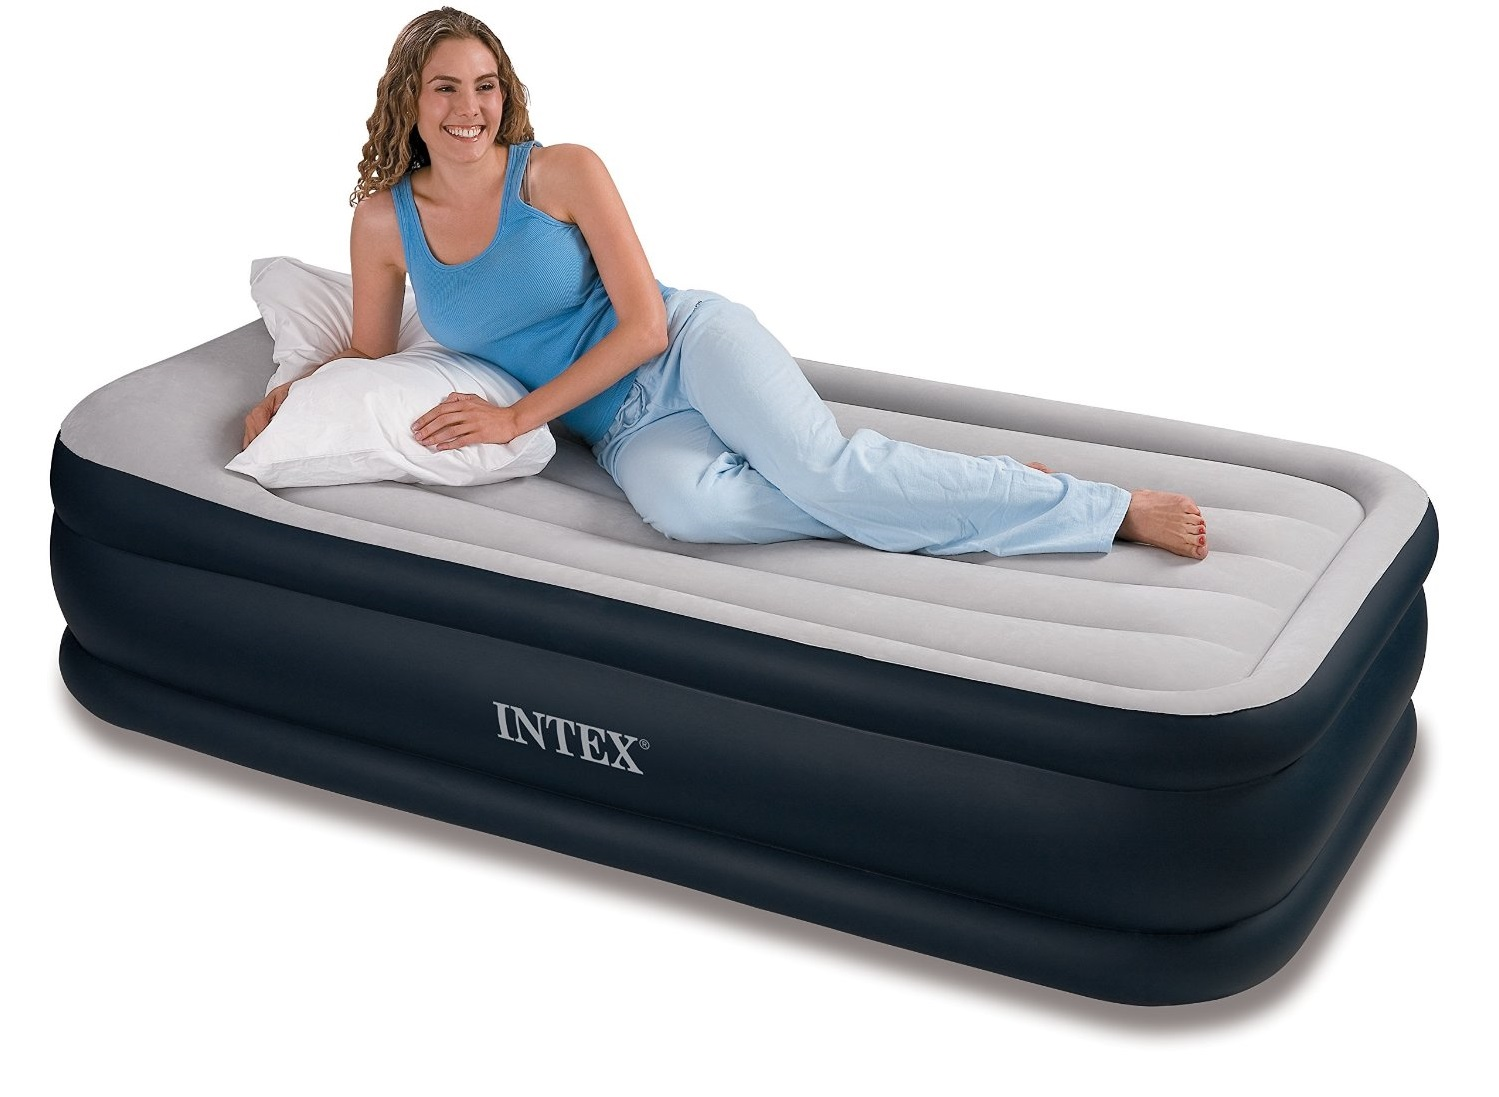 intext deluxe pillow rest raised airbed